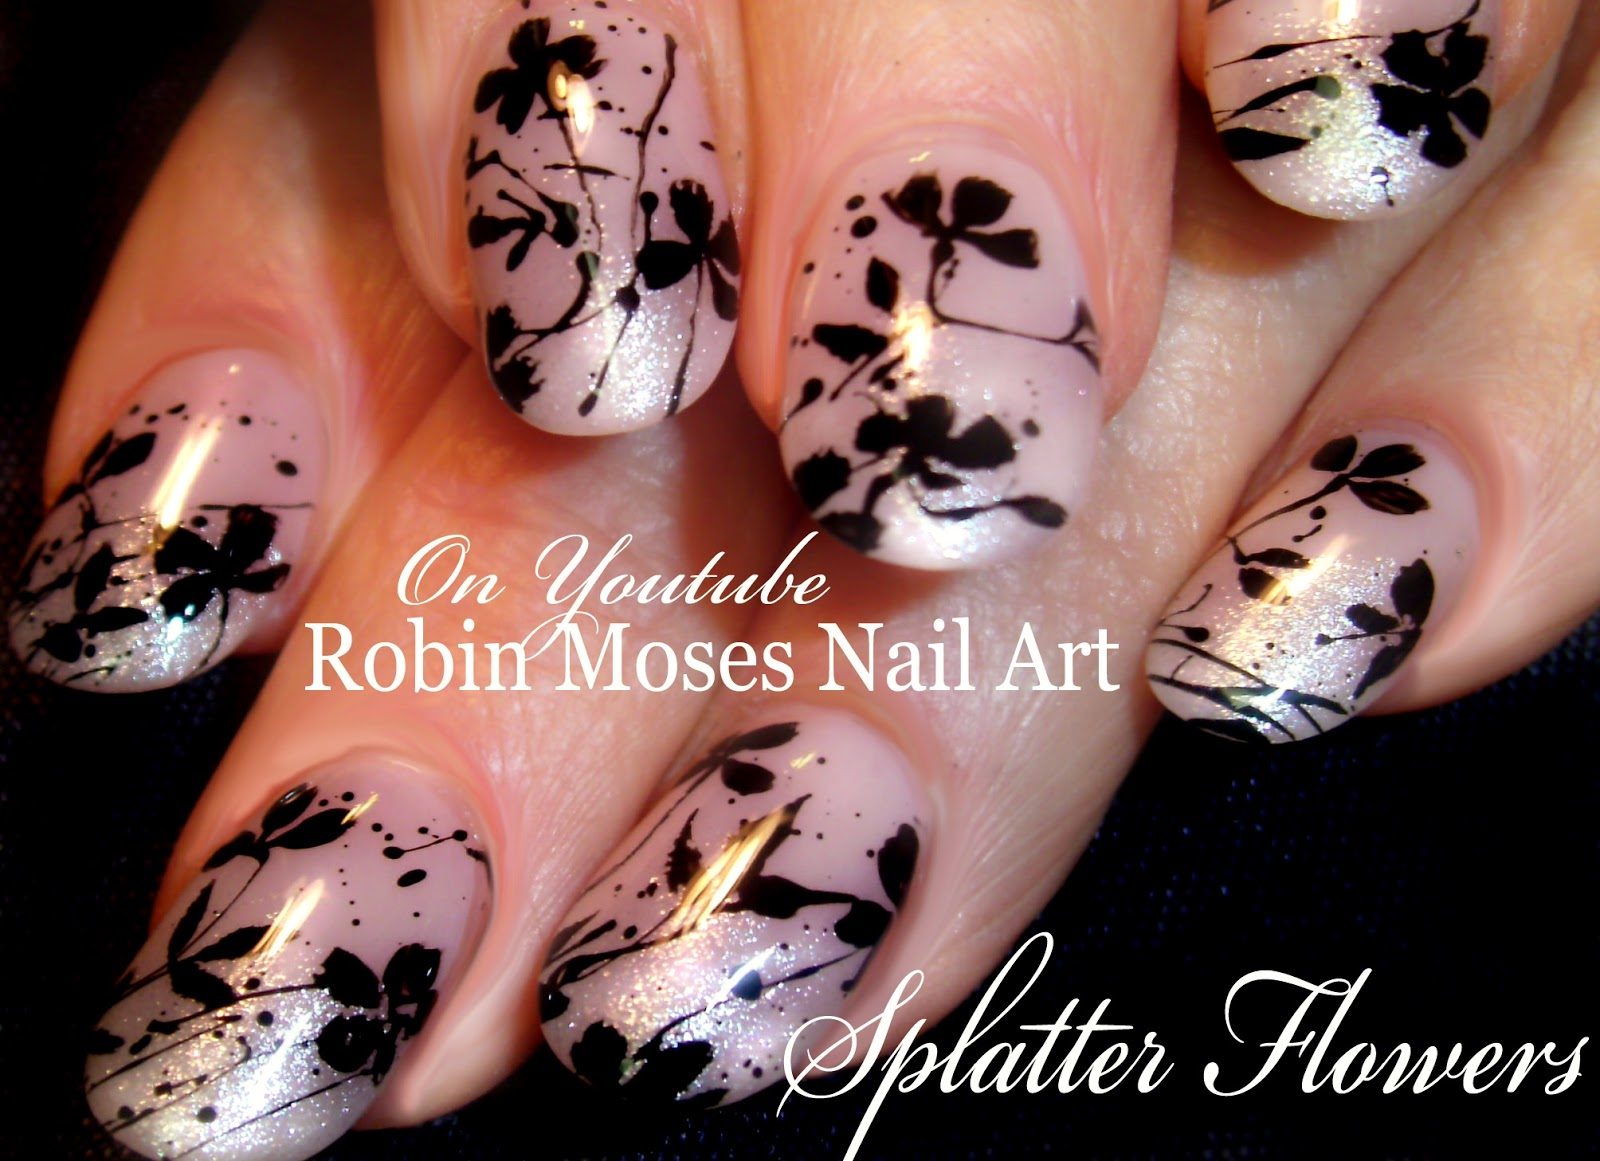 Robin moses nail art flower splatter paint with flowers black flower splatter paint with flowers black flower splatterpaint nail art prinsesfo Image collections